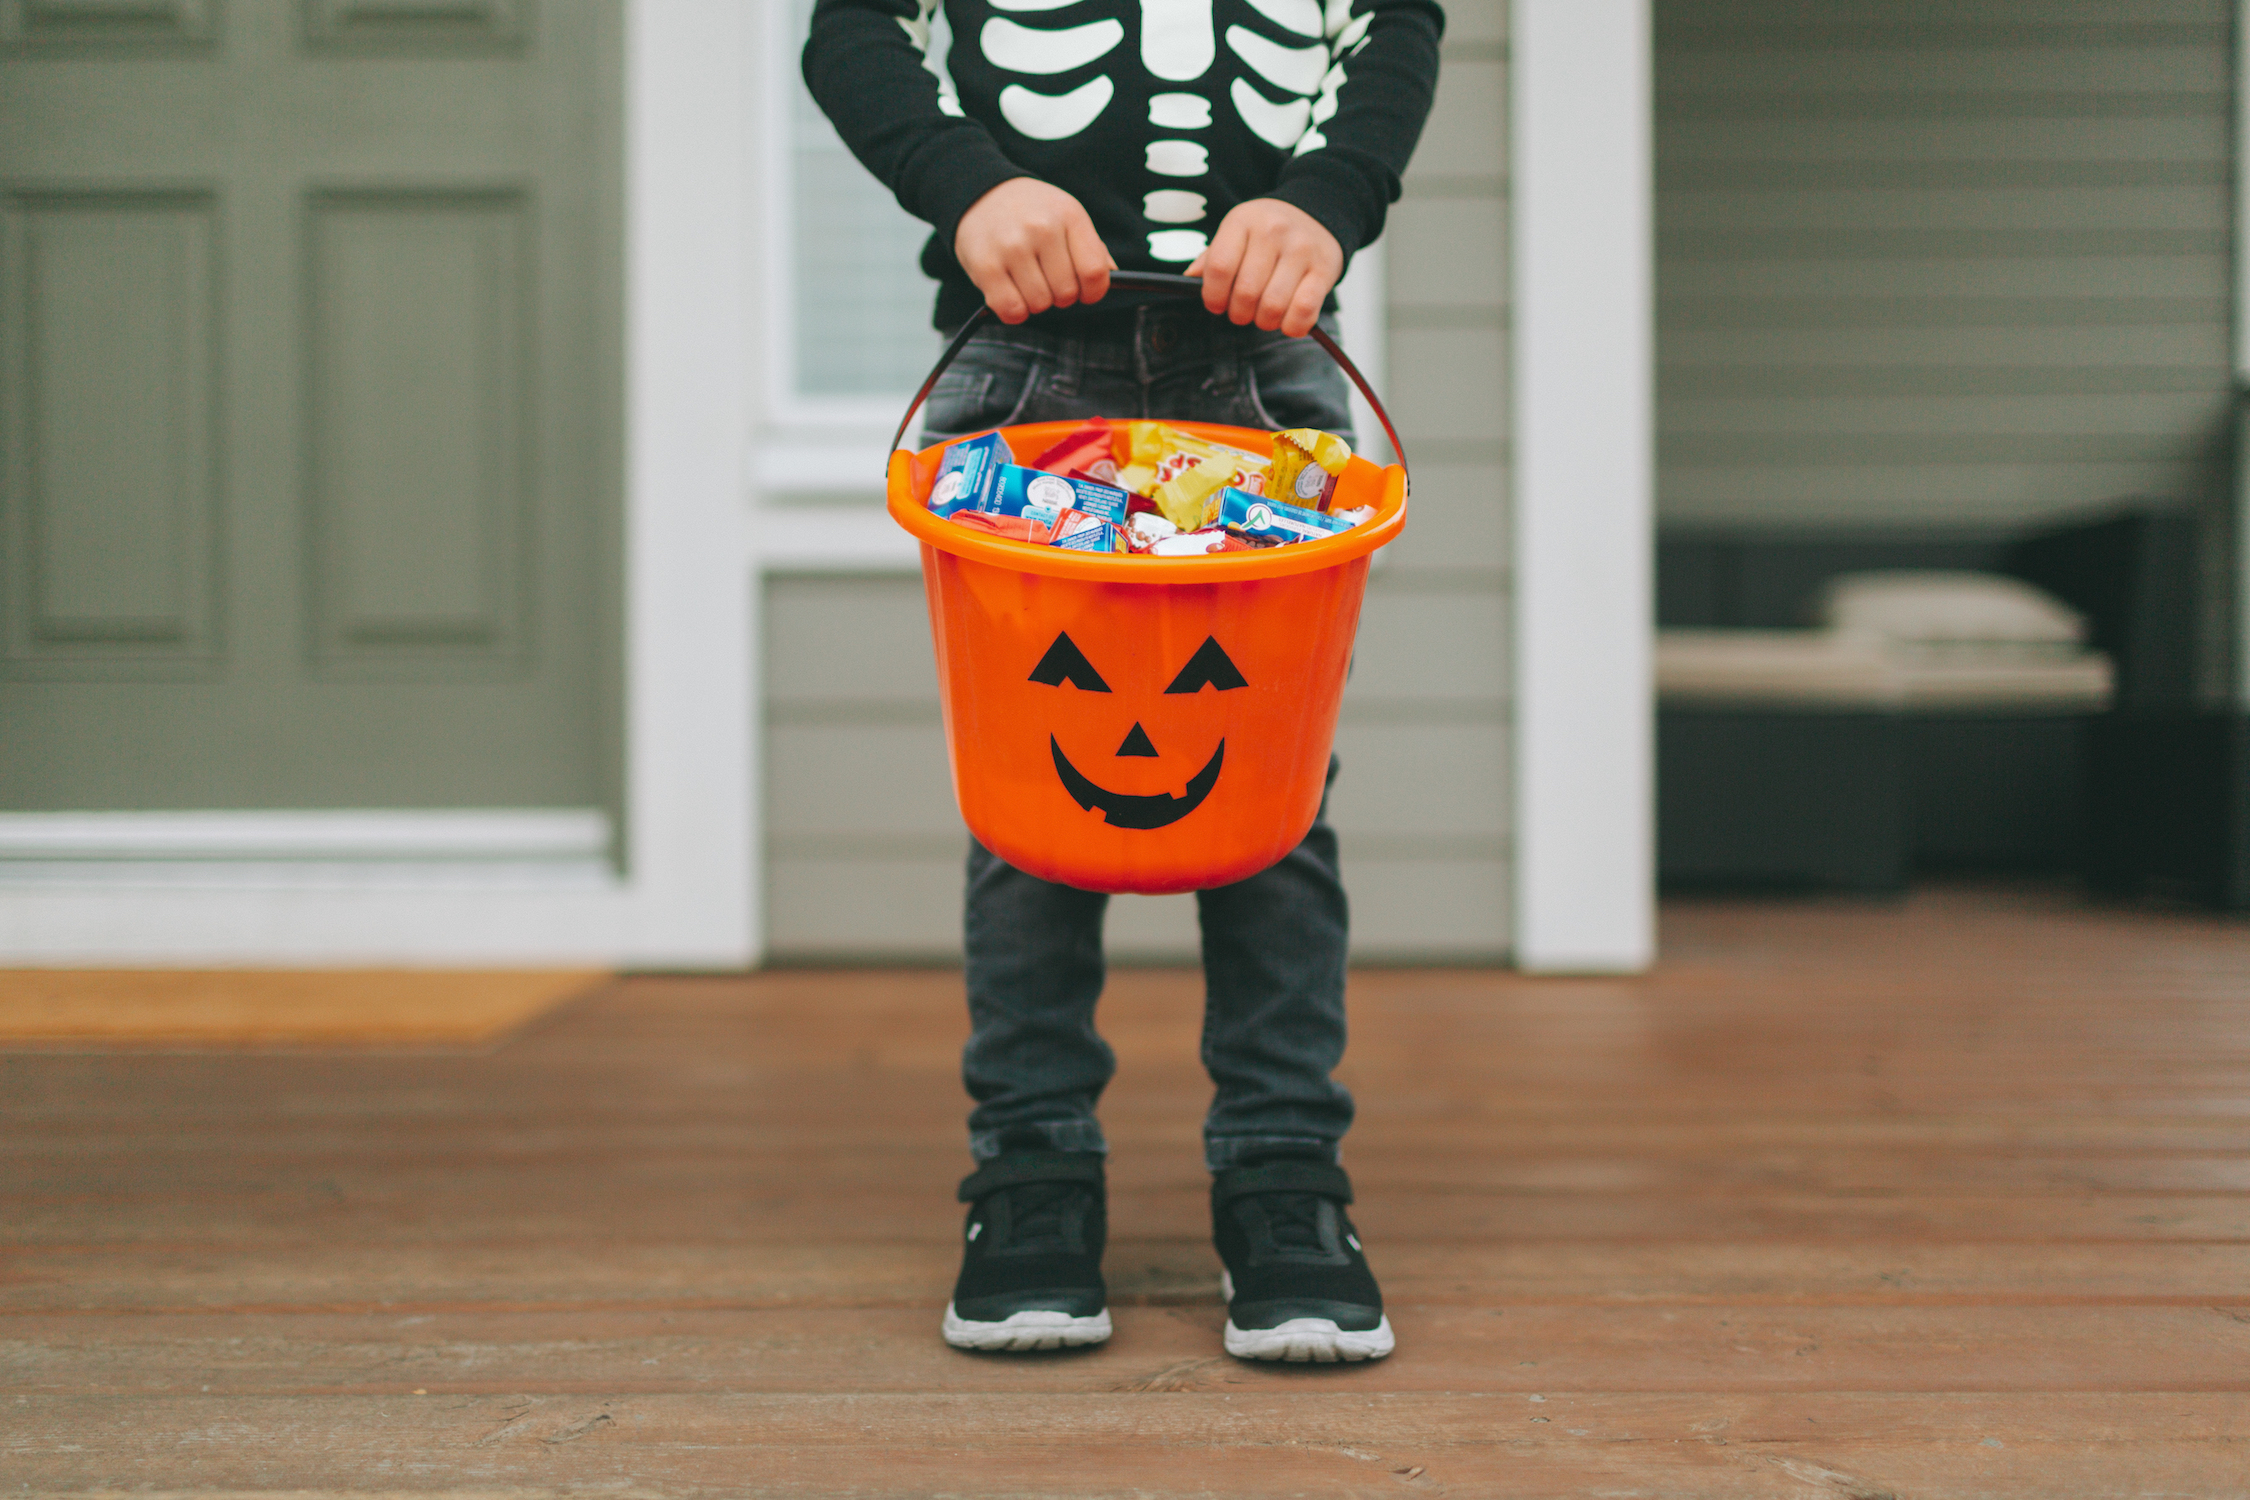 How To Make Your Family's Halloween Autism-Friendly